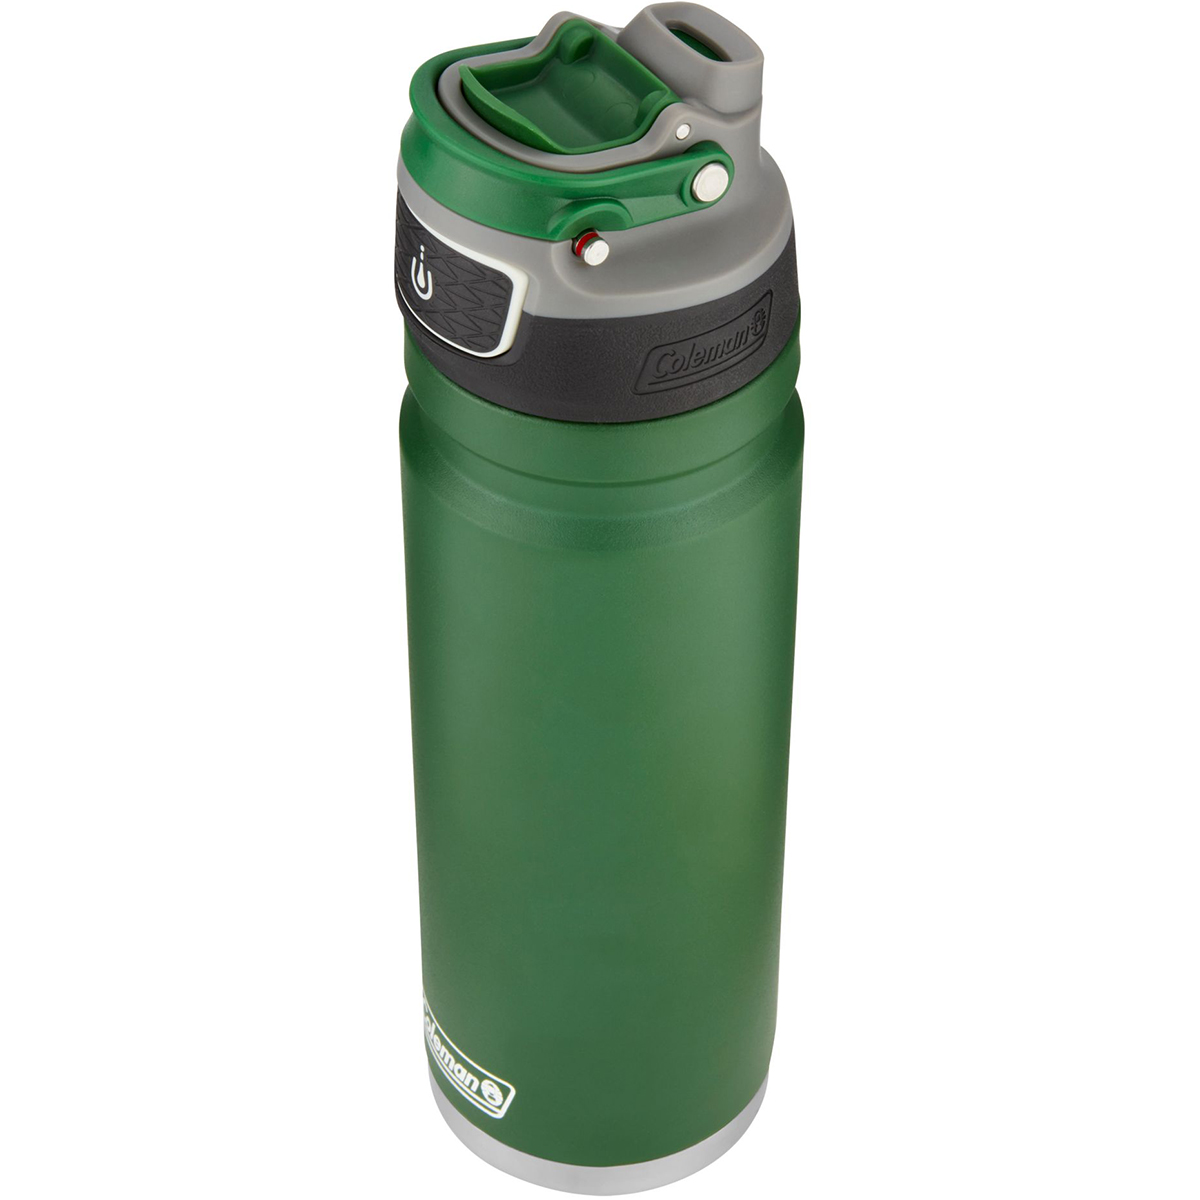 Coleman-24-oz-Free-Flow-Autoseal-Insulated-Stainless-Steel-Water-Bottle thumbnail 8